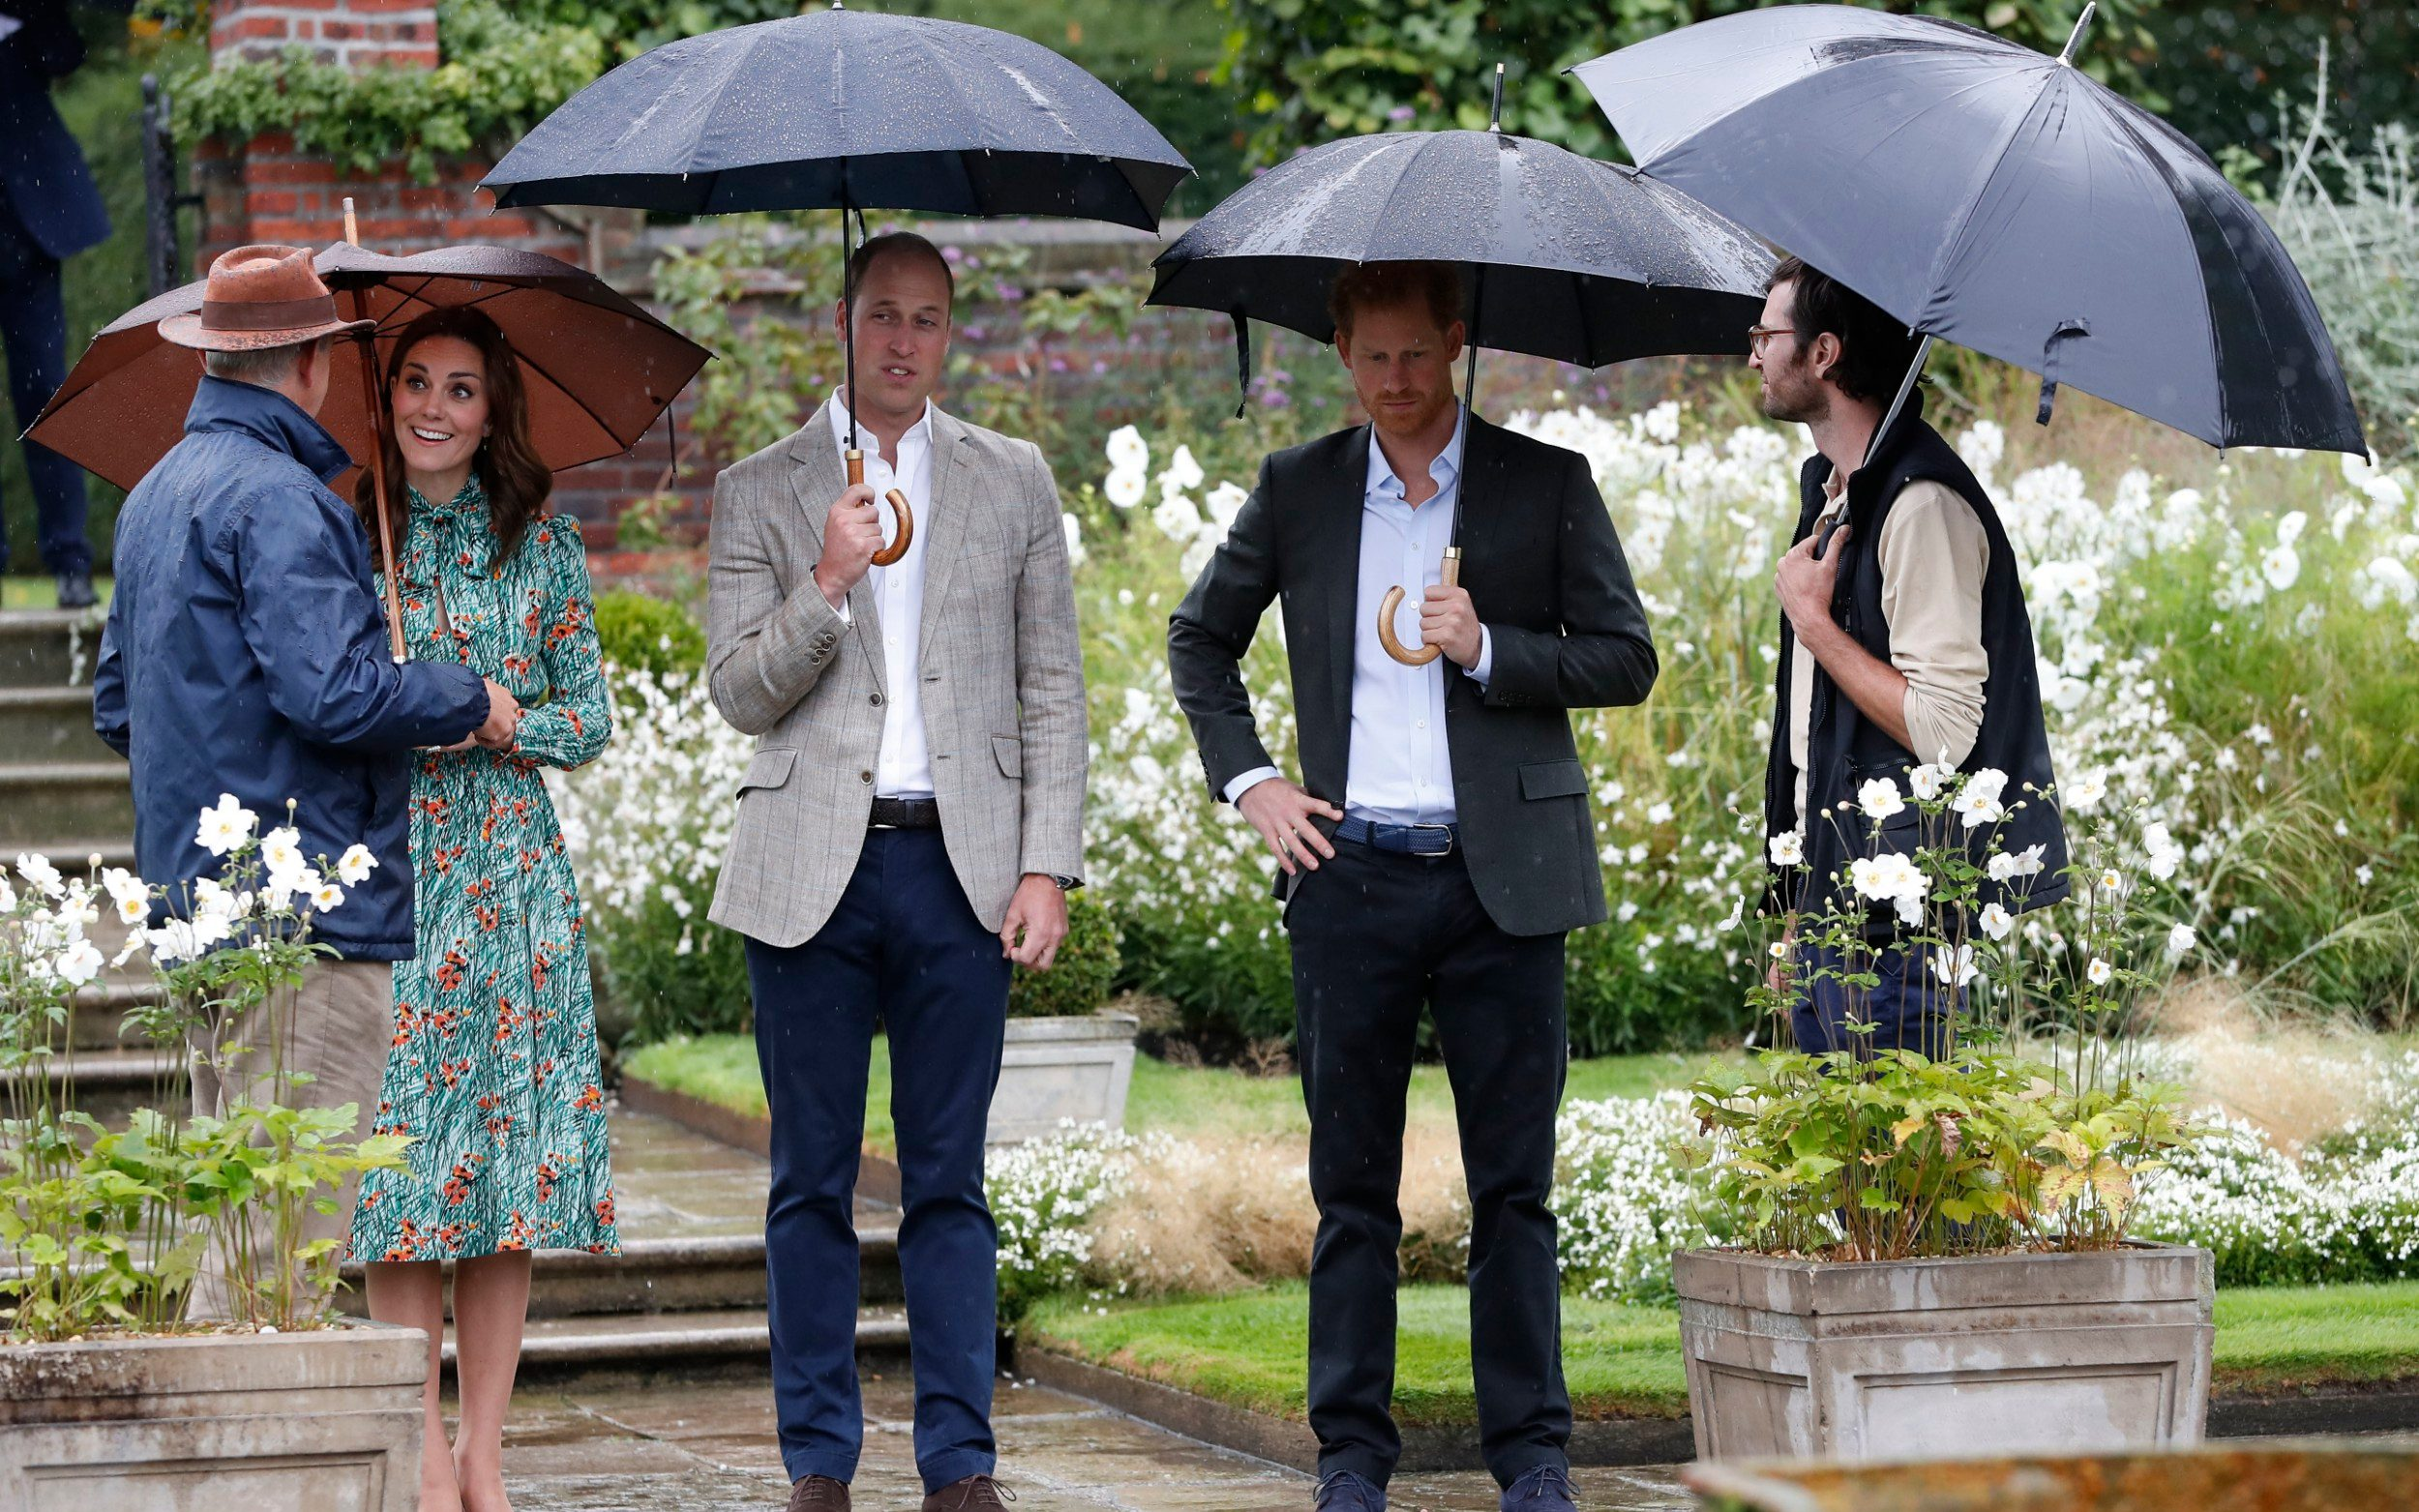 The Royals are given a tour by gardeners